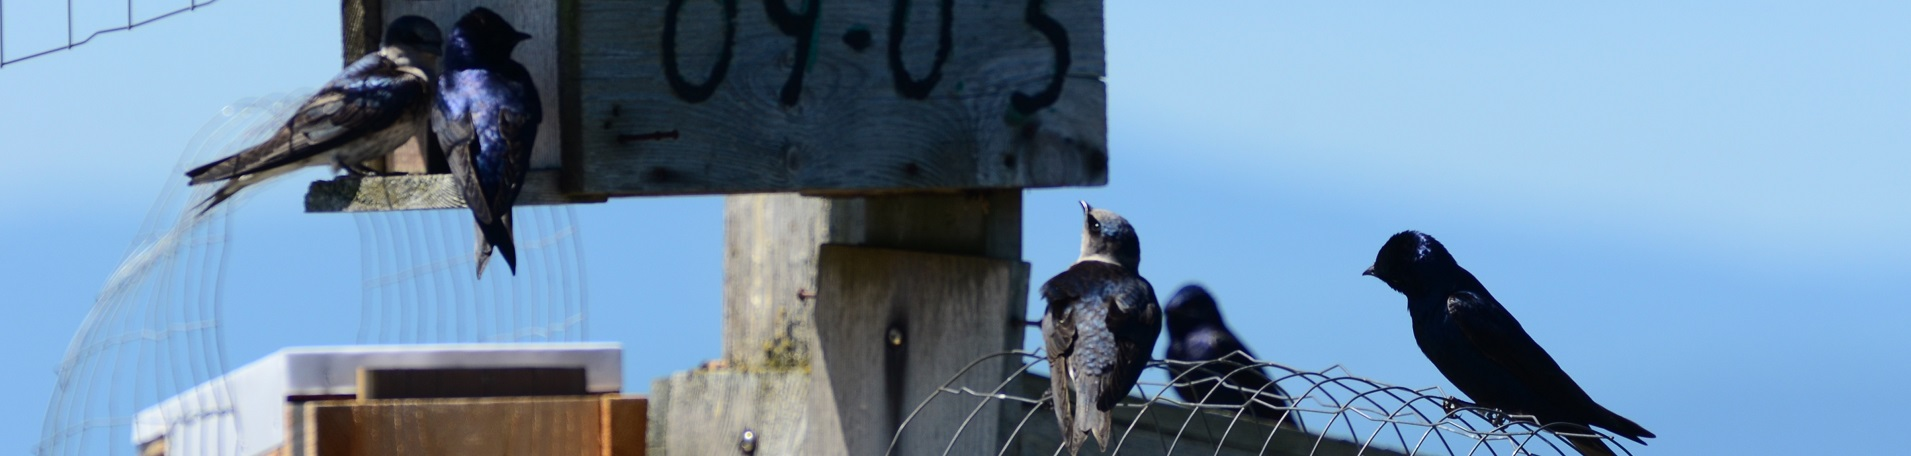 small black and blue birds perched on numbered birdfeeders outside against a blue sky backdrop